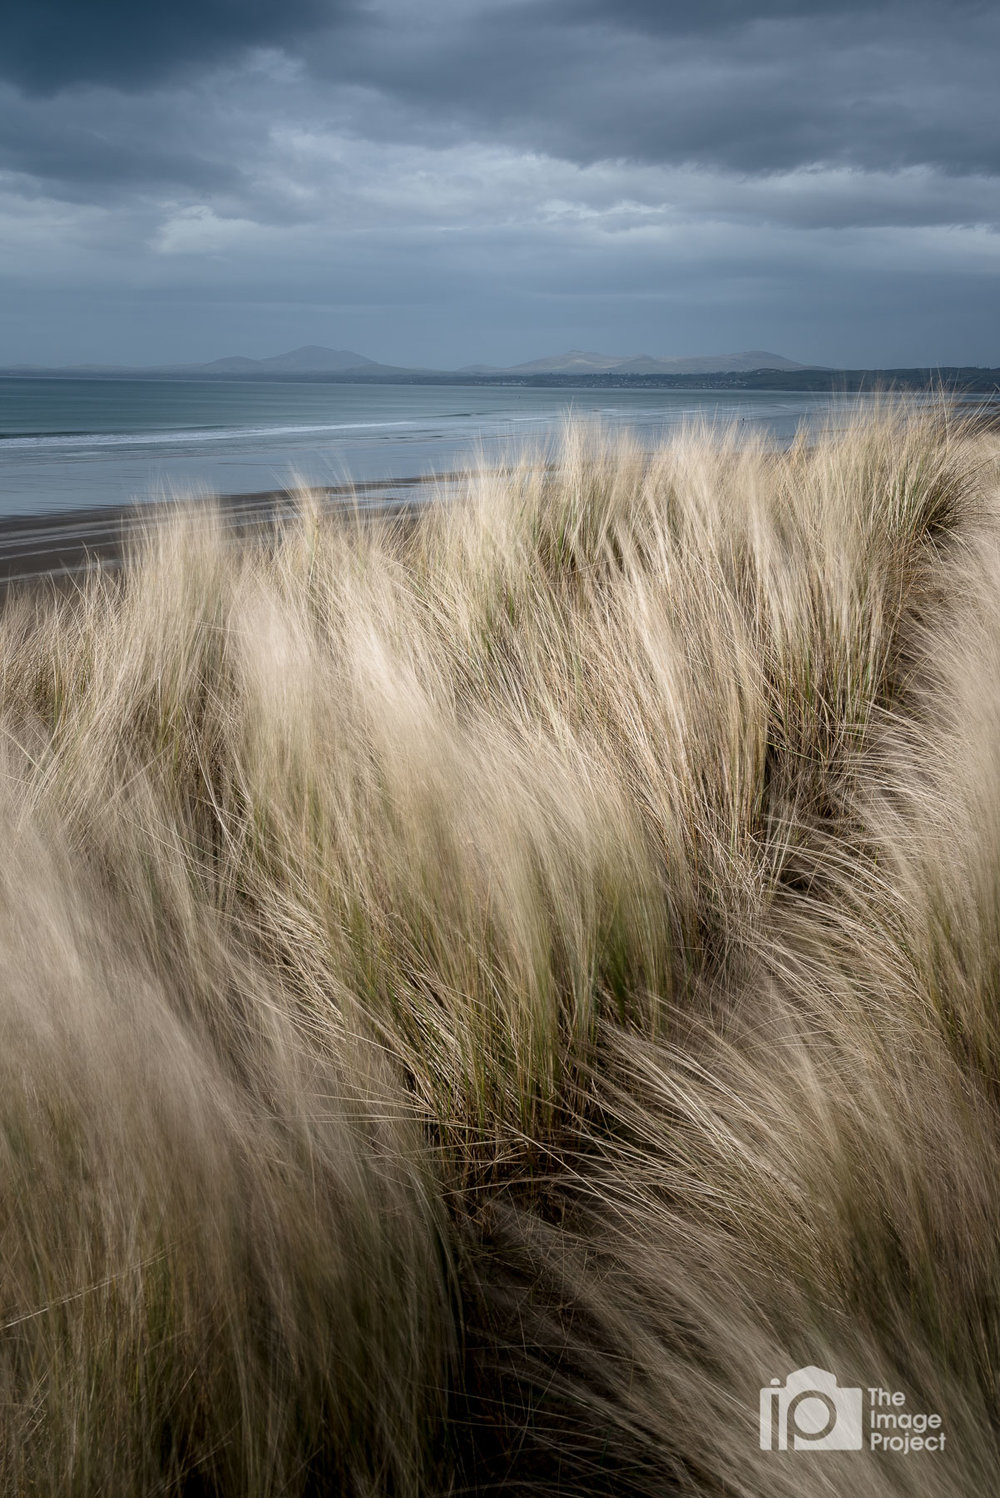 Grassy sand dunes softly lit by afternoon sun with mountains of Snowdonia in background, March 2018